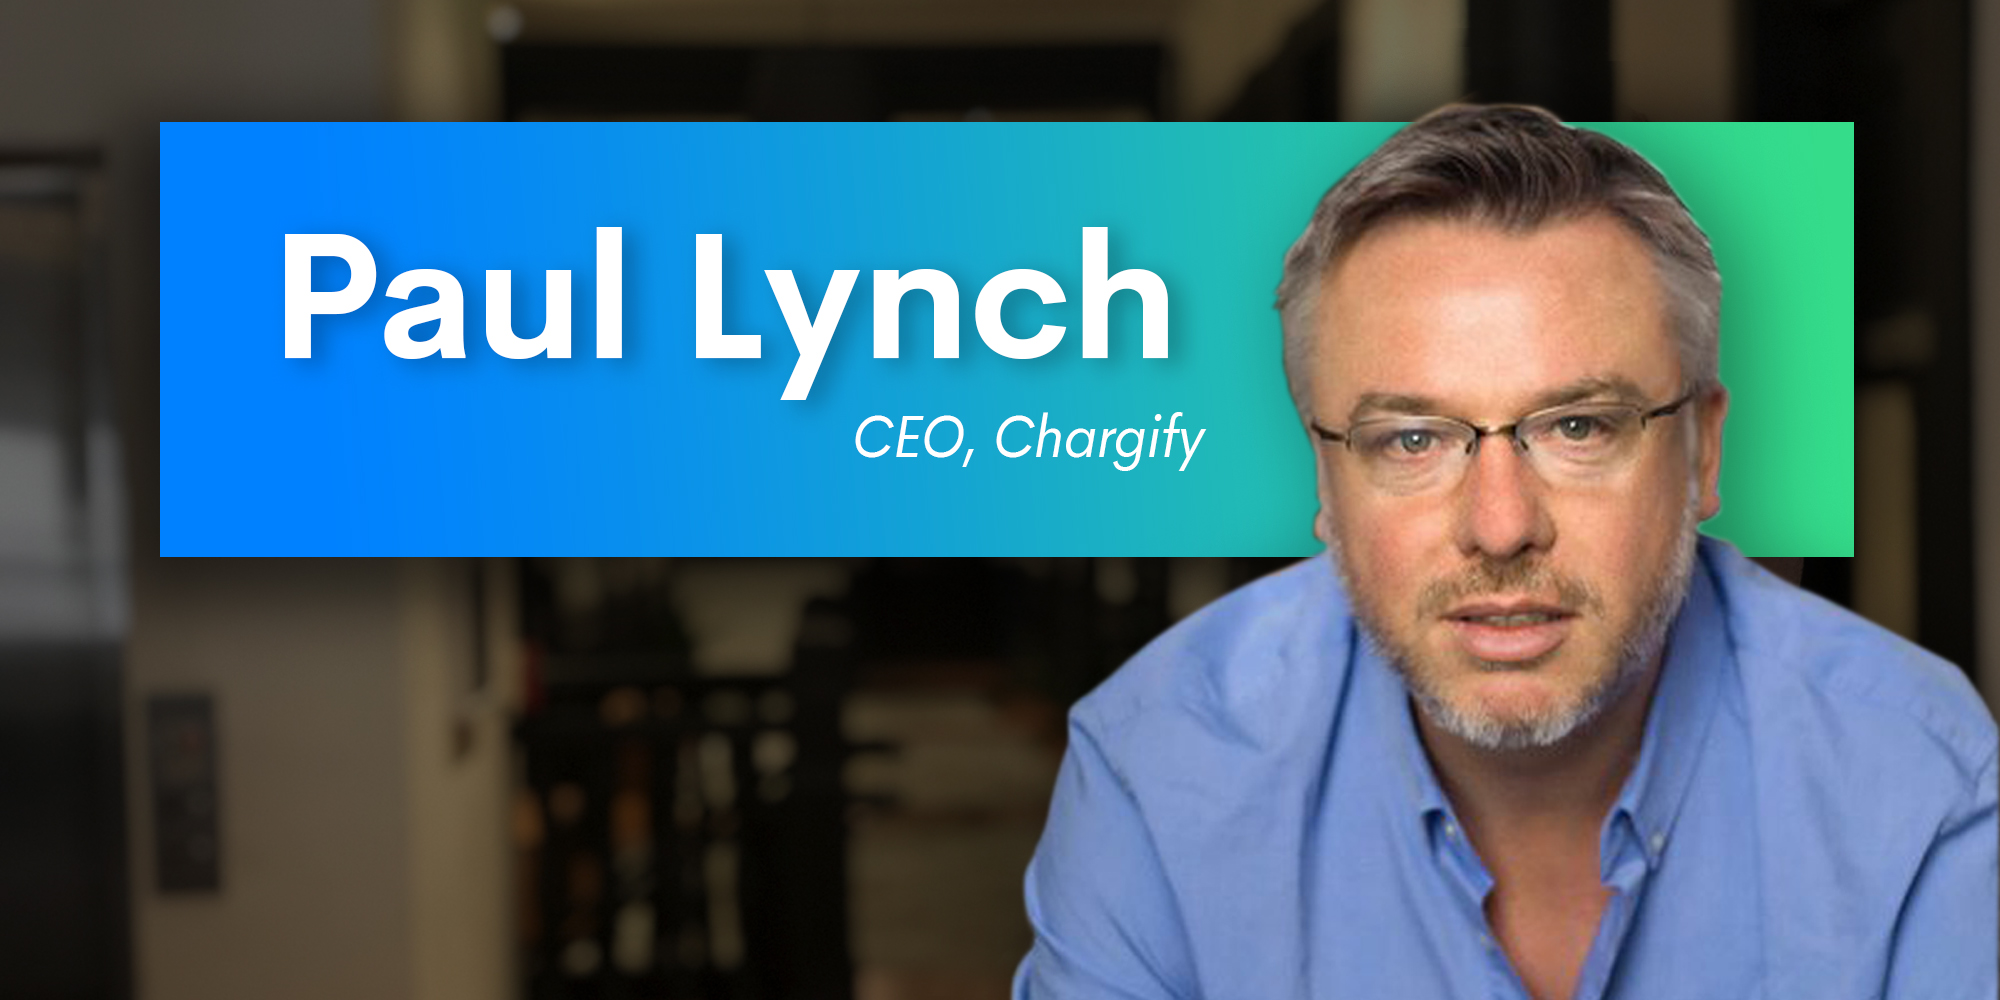 Paul Lynch brings extensive SaaS experience to Chargify as CEO